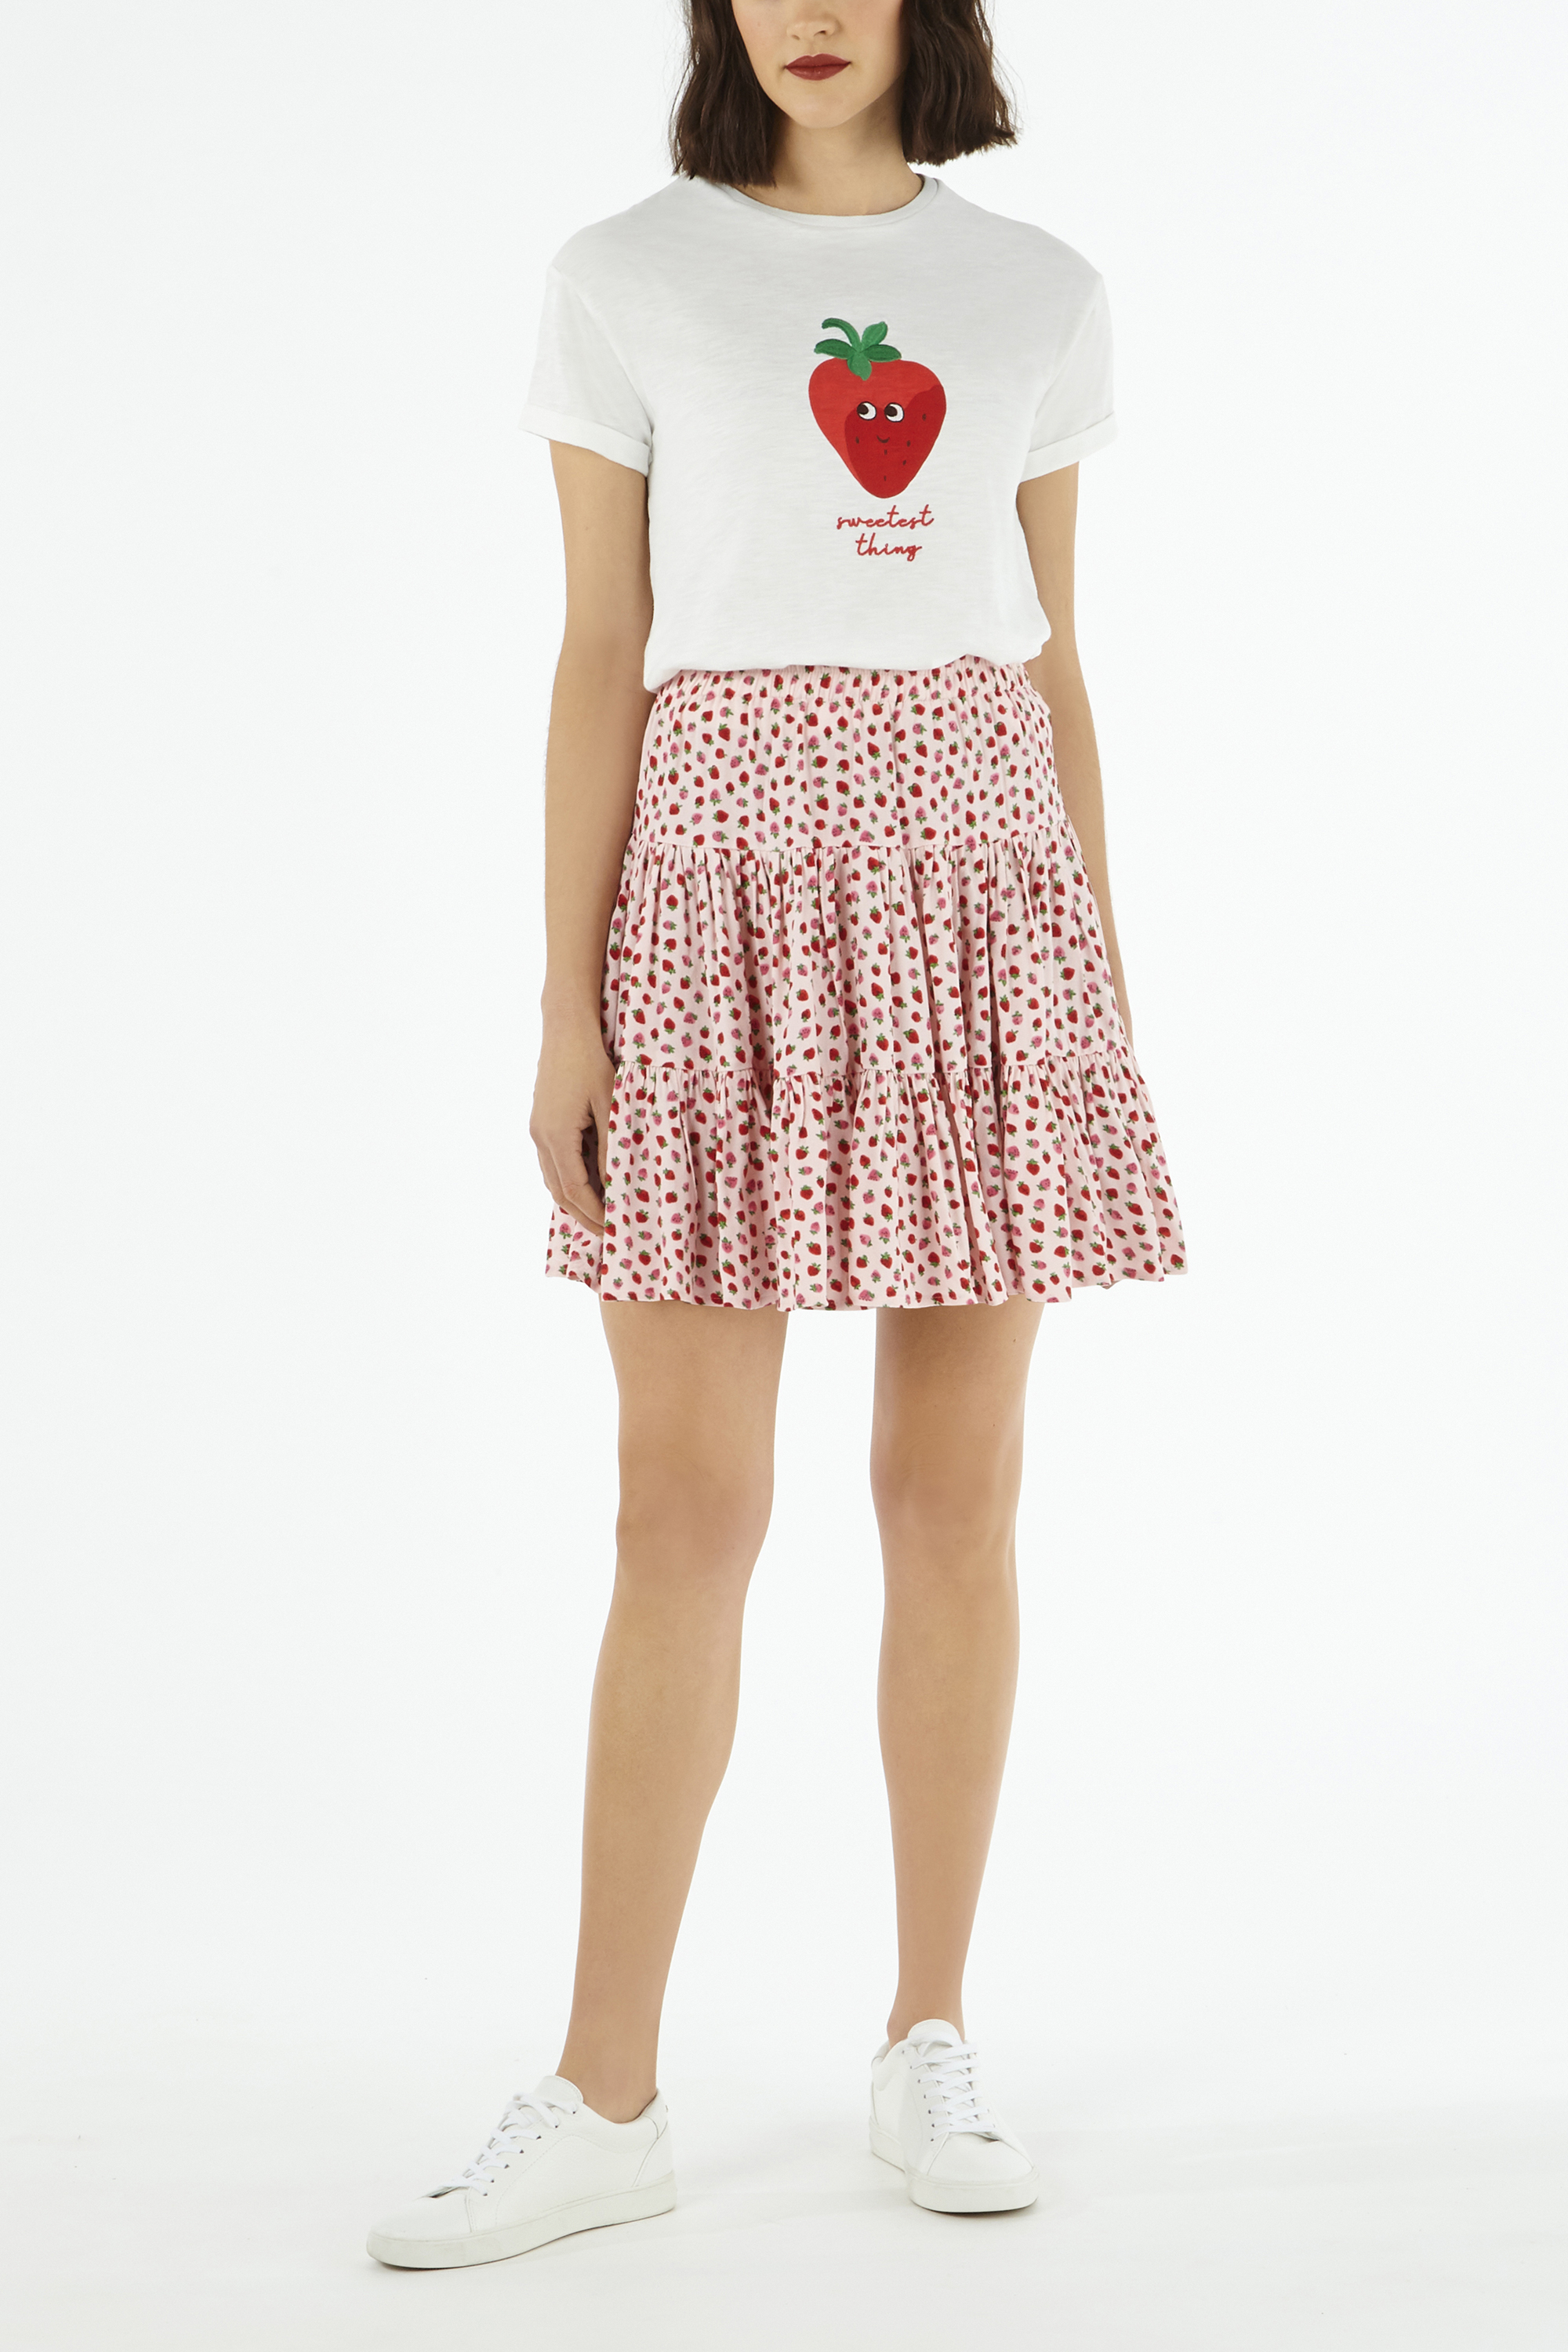 Cath Kidston Strawberry Print Tiered Mini Skirt in Light Pink, Straberries, Viscose Rayon, 16